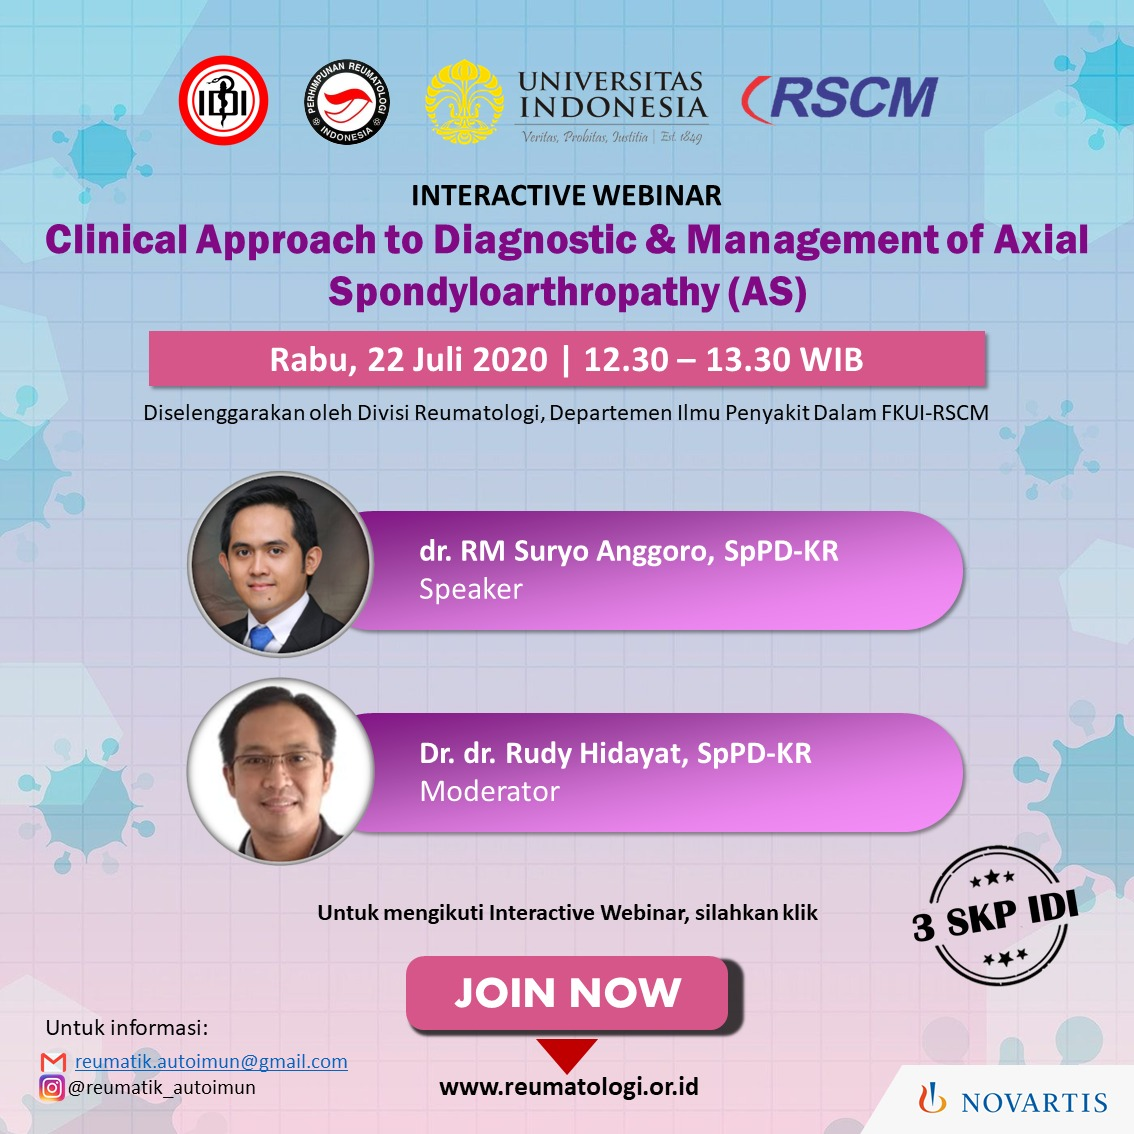 Registration of Clinical Approach to Diagnostic & Management of Axial Spondyloarthropathy (AS)